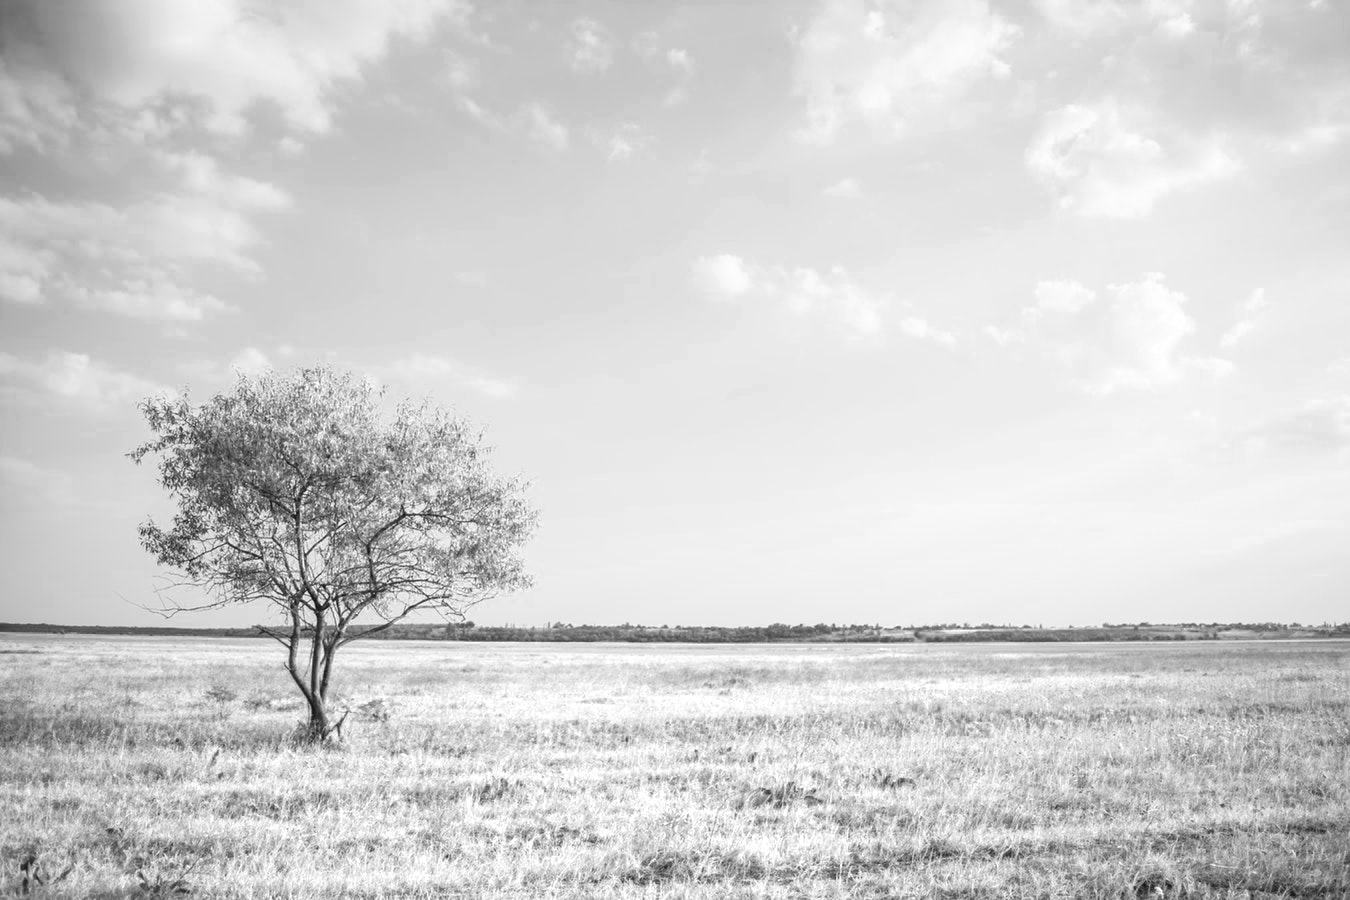 yellow filter for black and white photography